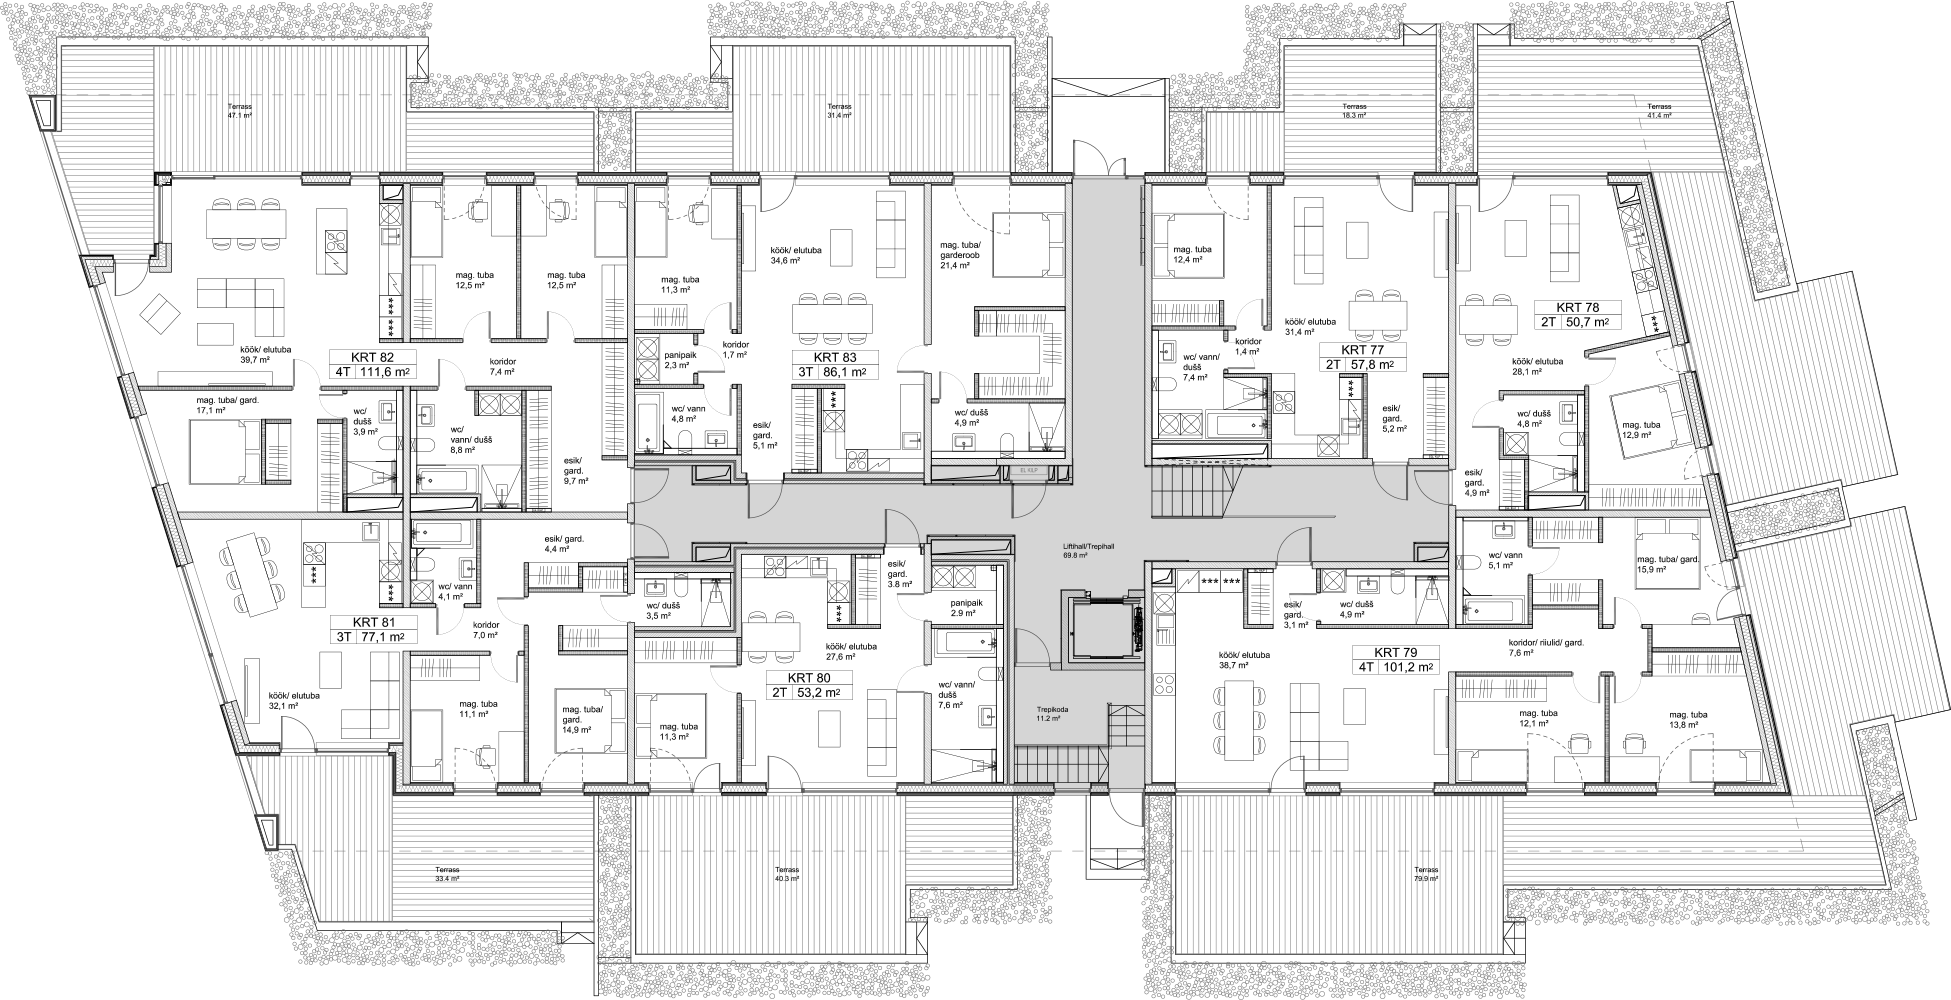 Floor 1 plan of Kiikri Apartment House C